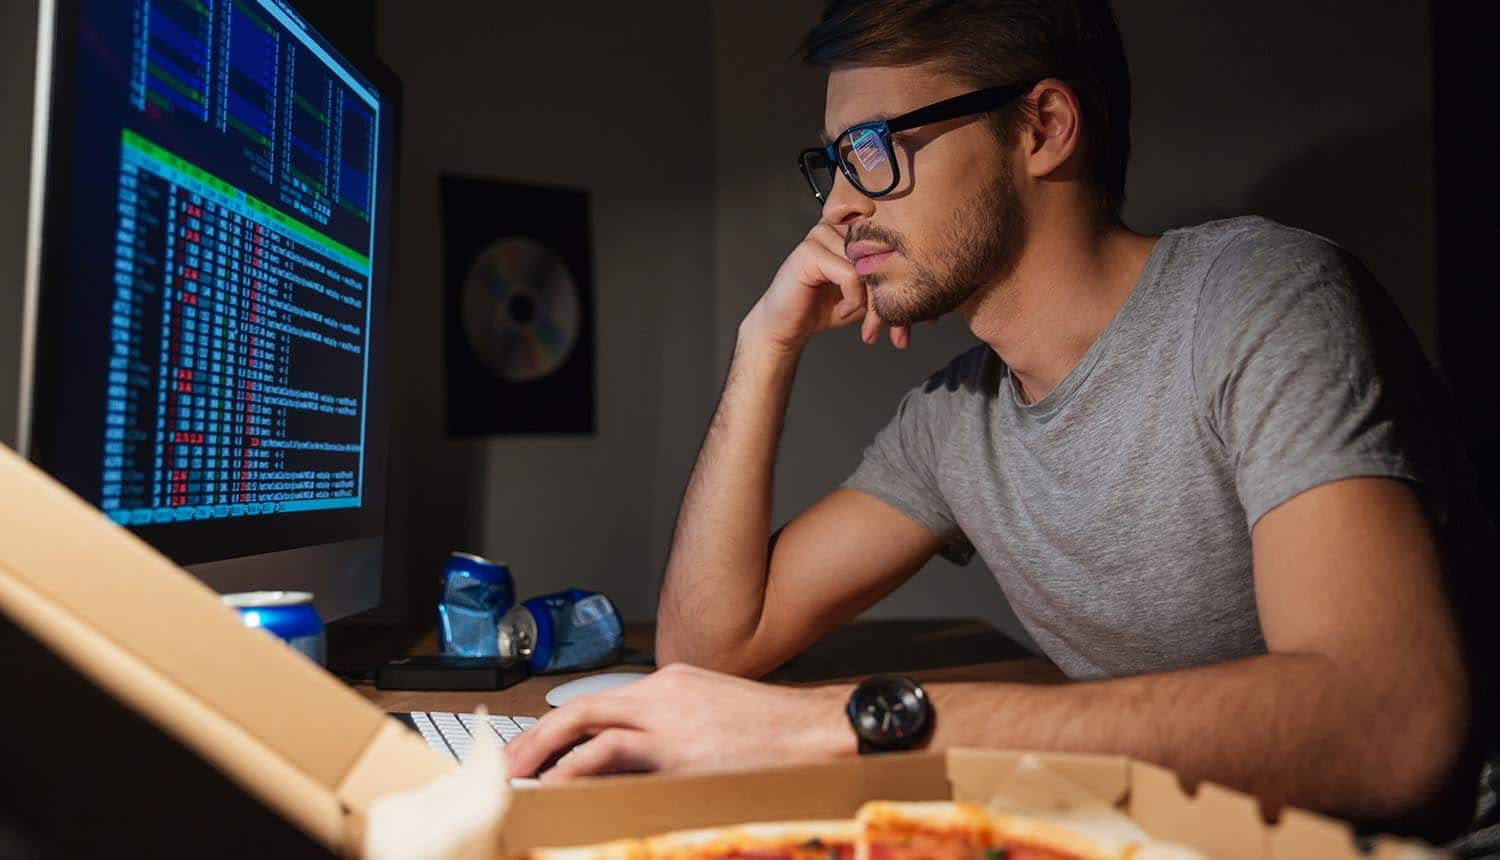 Programmer working on computer showing more hackers making use of software patches to create new vulnerability path